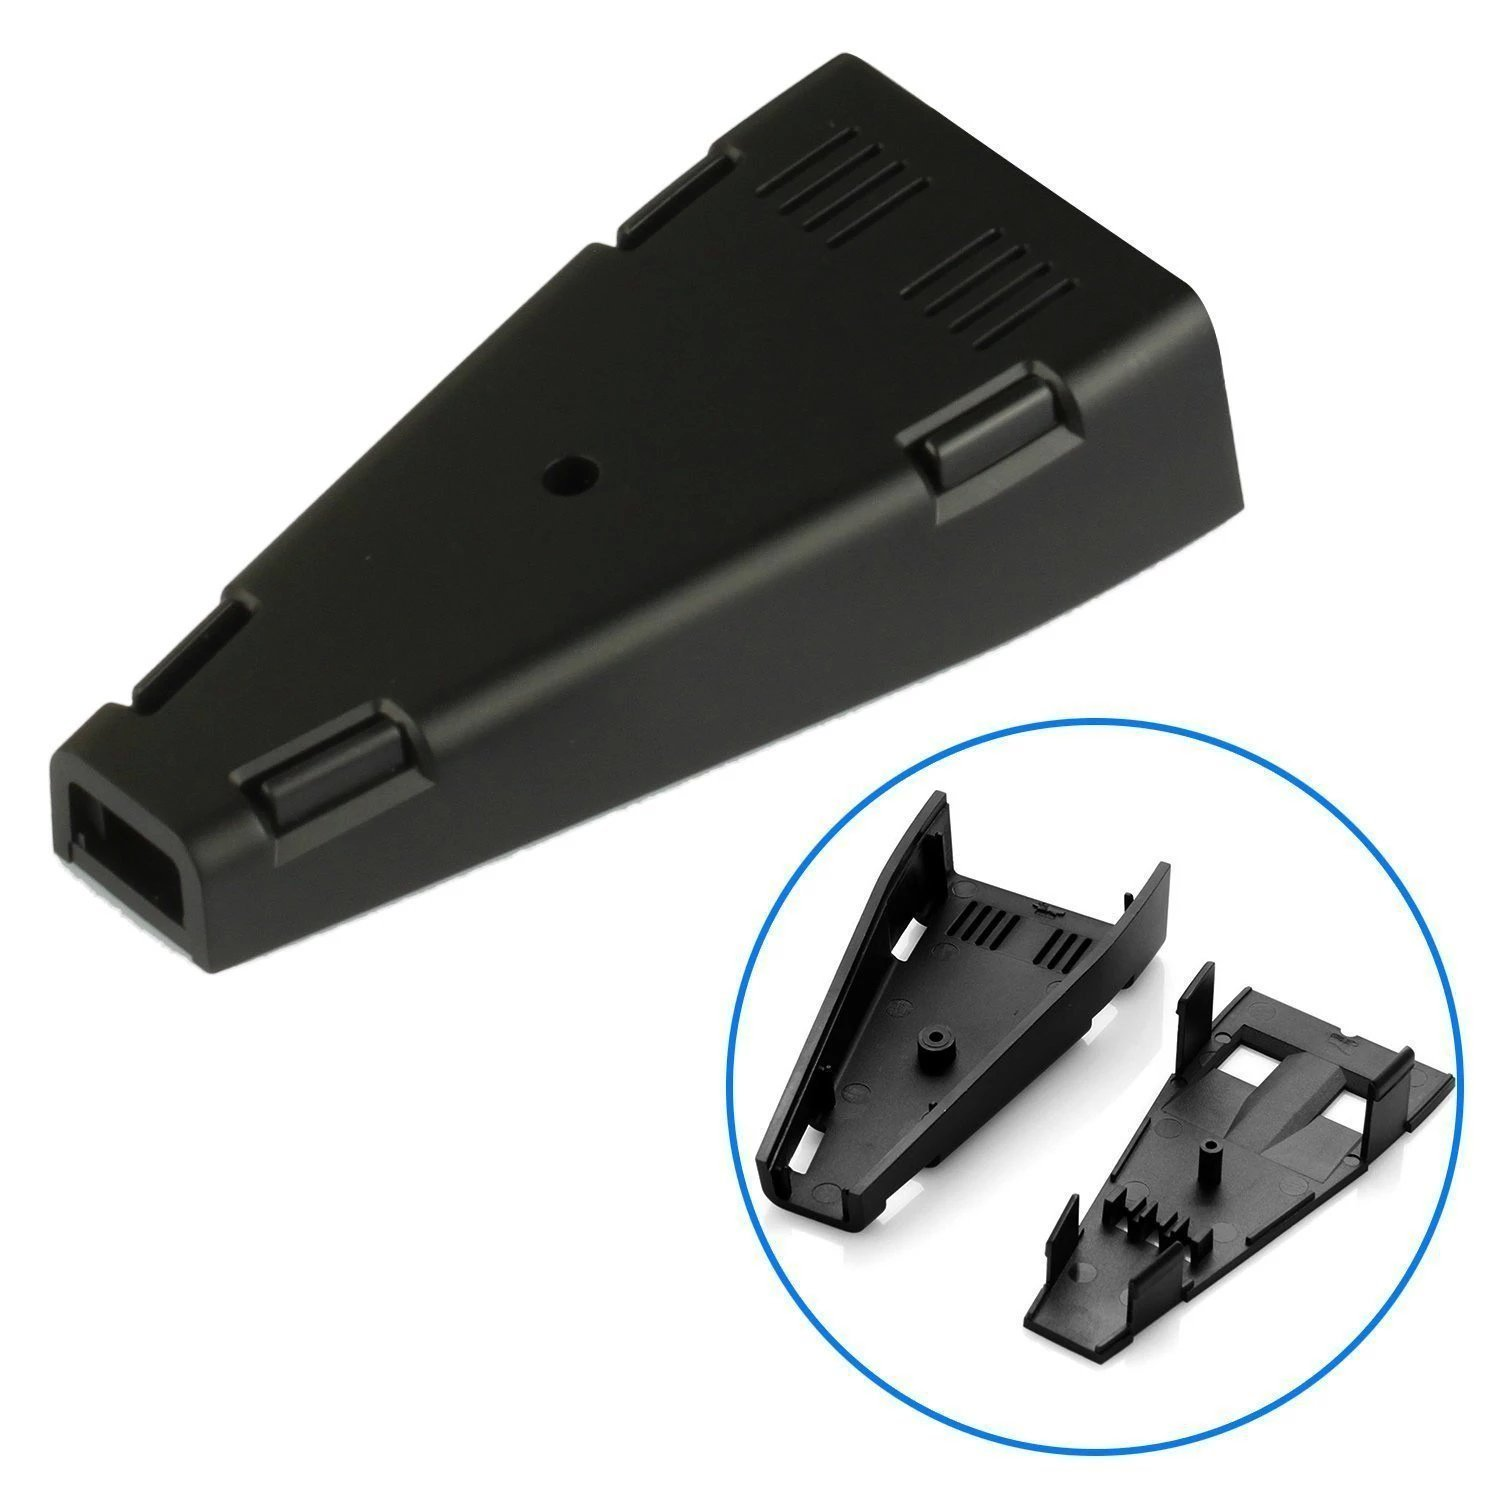 Cord Cover for SG9665GC